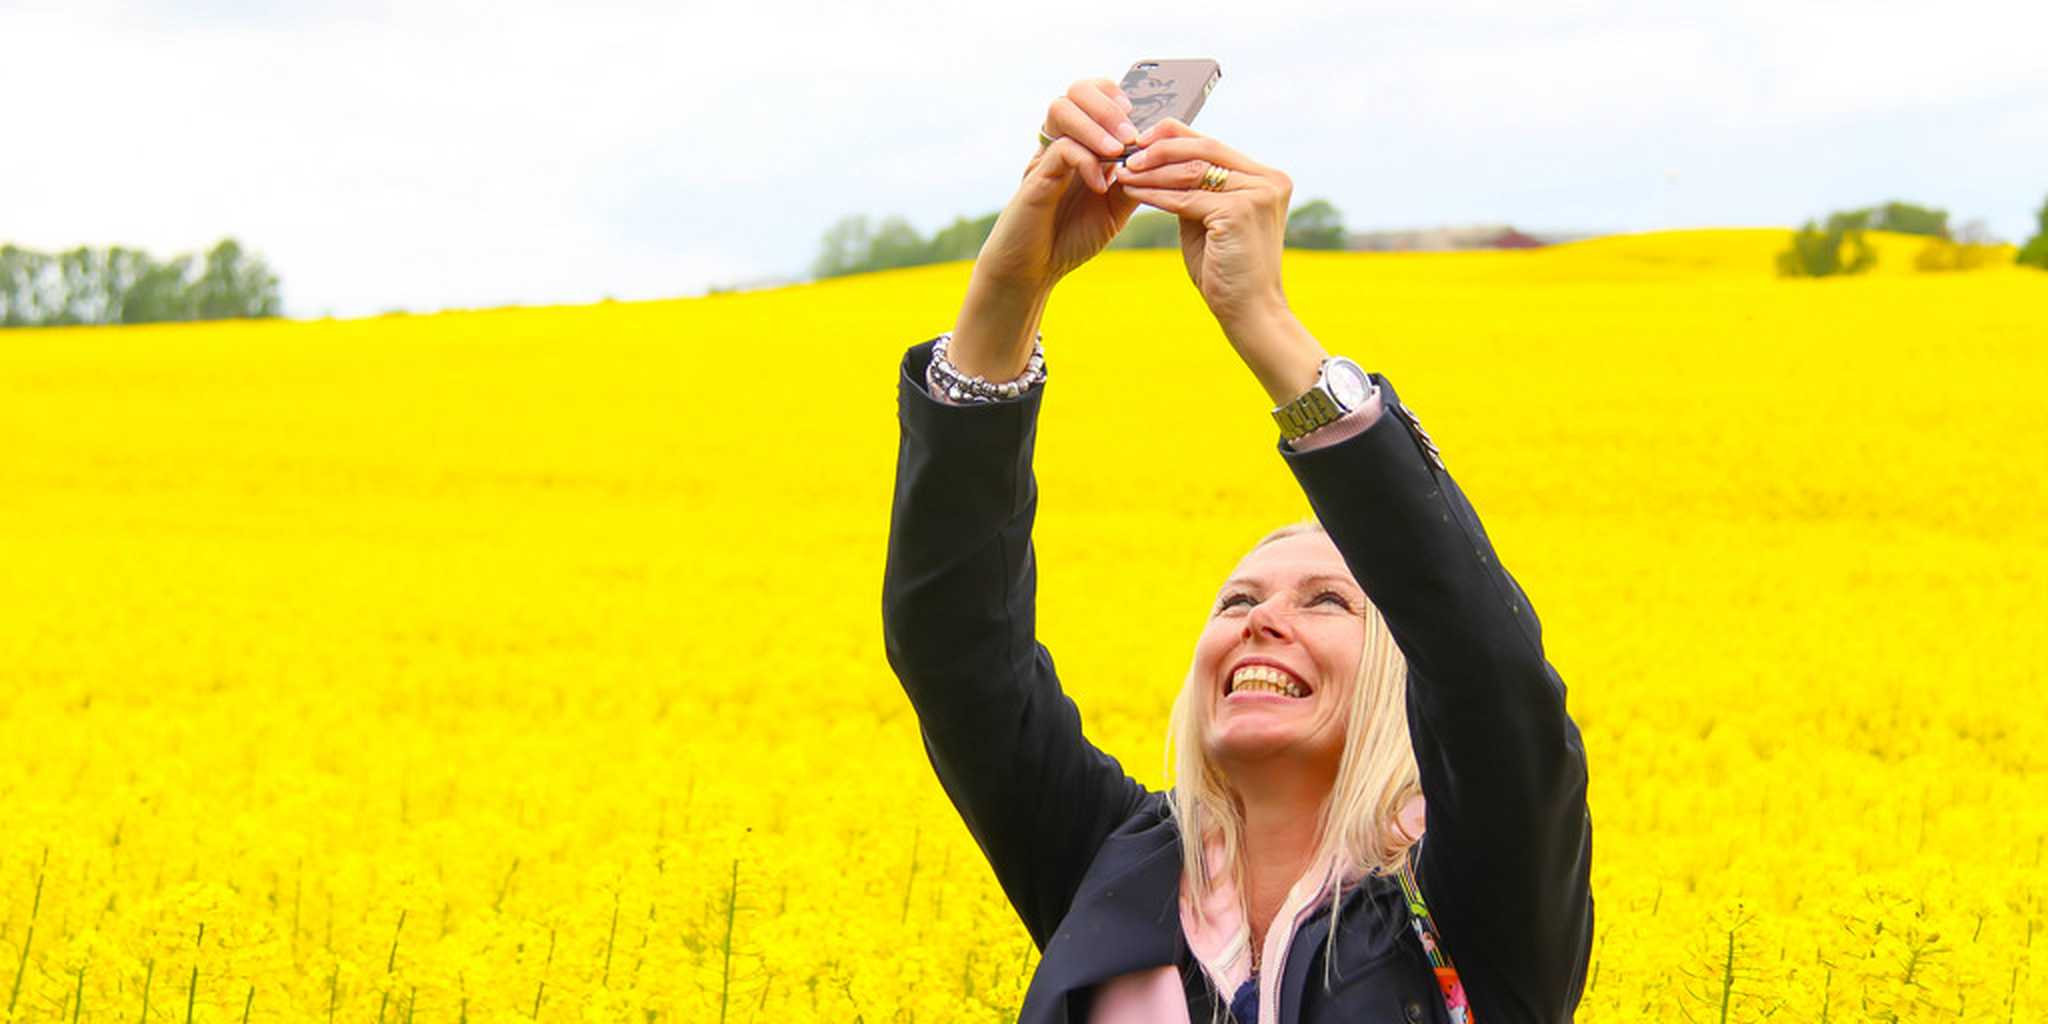 All sizes | Taking a selfie | Flickr - Photo Sharing!